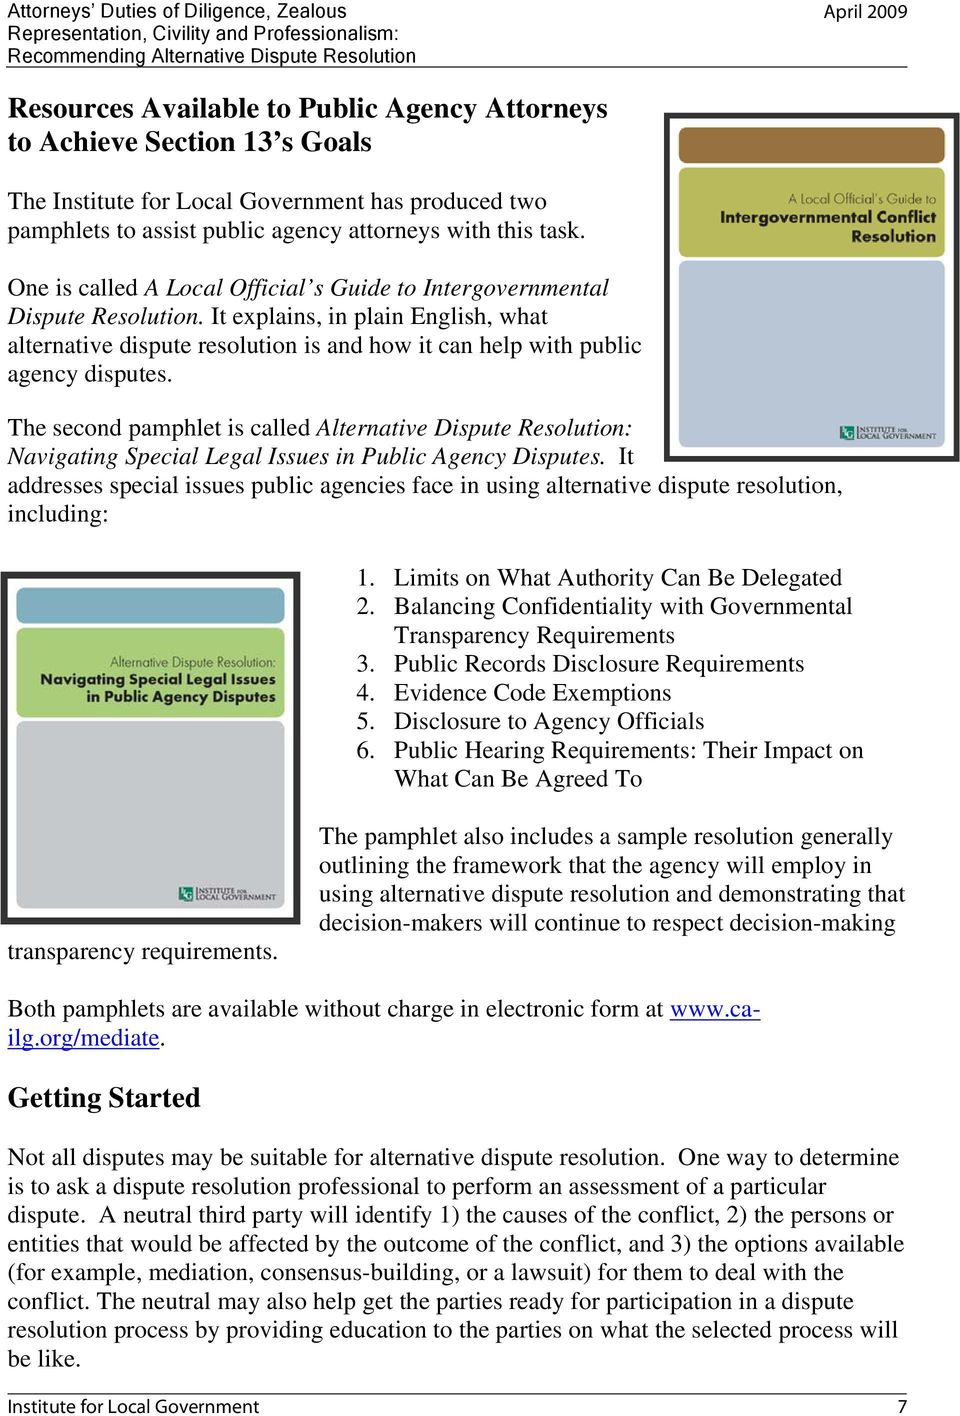 The second pamphlet is called Alternative Dispute Resolution: Navigating Special Legal Issues in Public Agency Disputes.